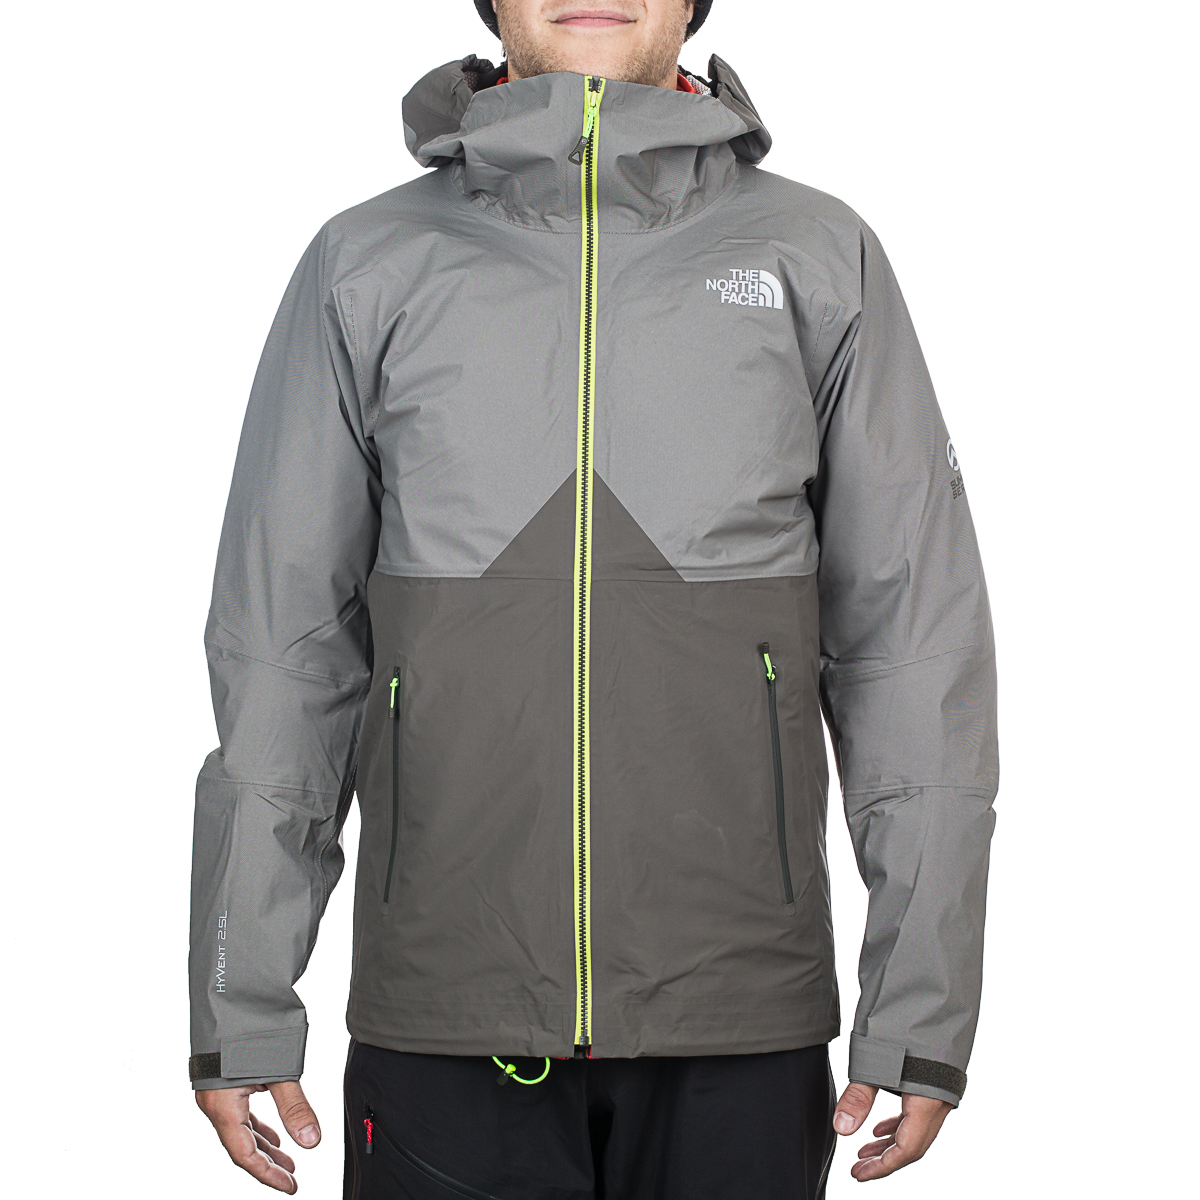 d460c46c7 FuseForm Originator Jacket